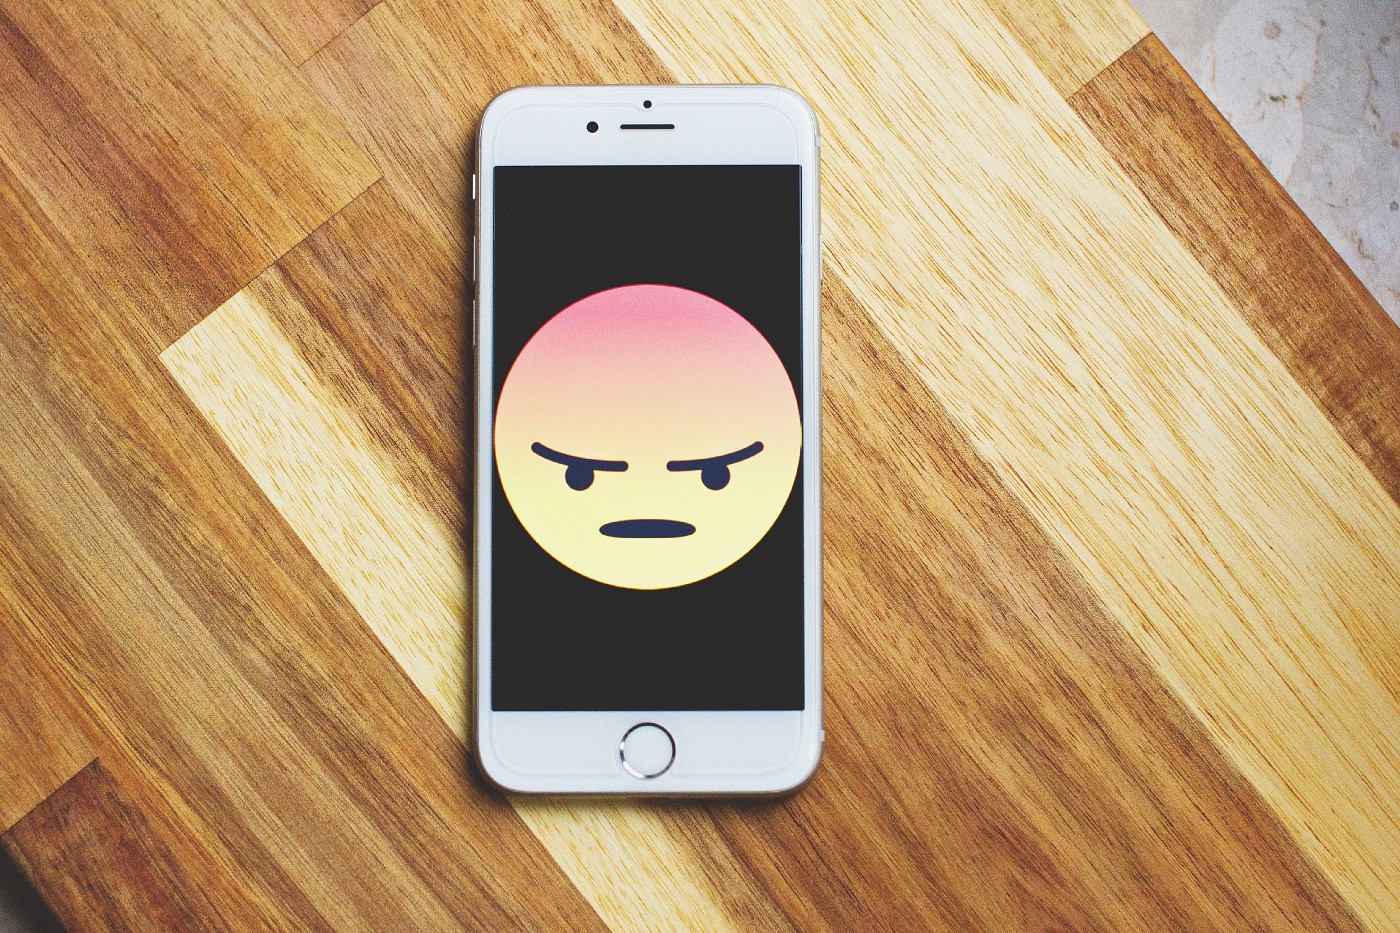 An white Apple iPhone with an image of an angry face emoji.